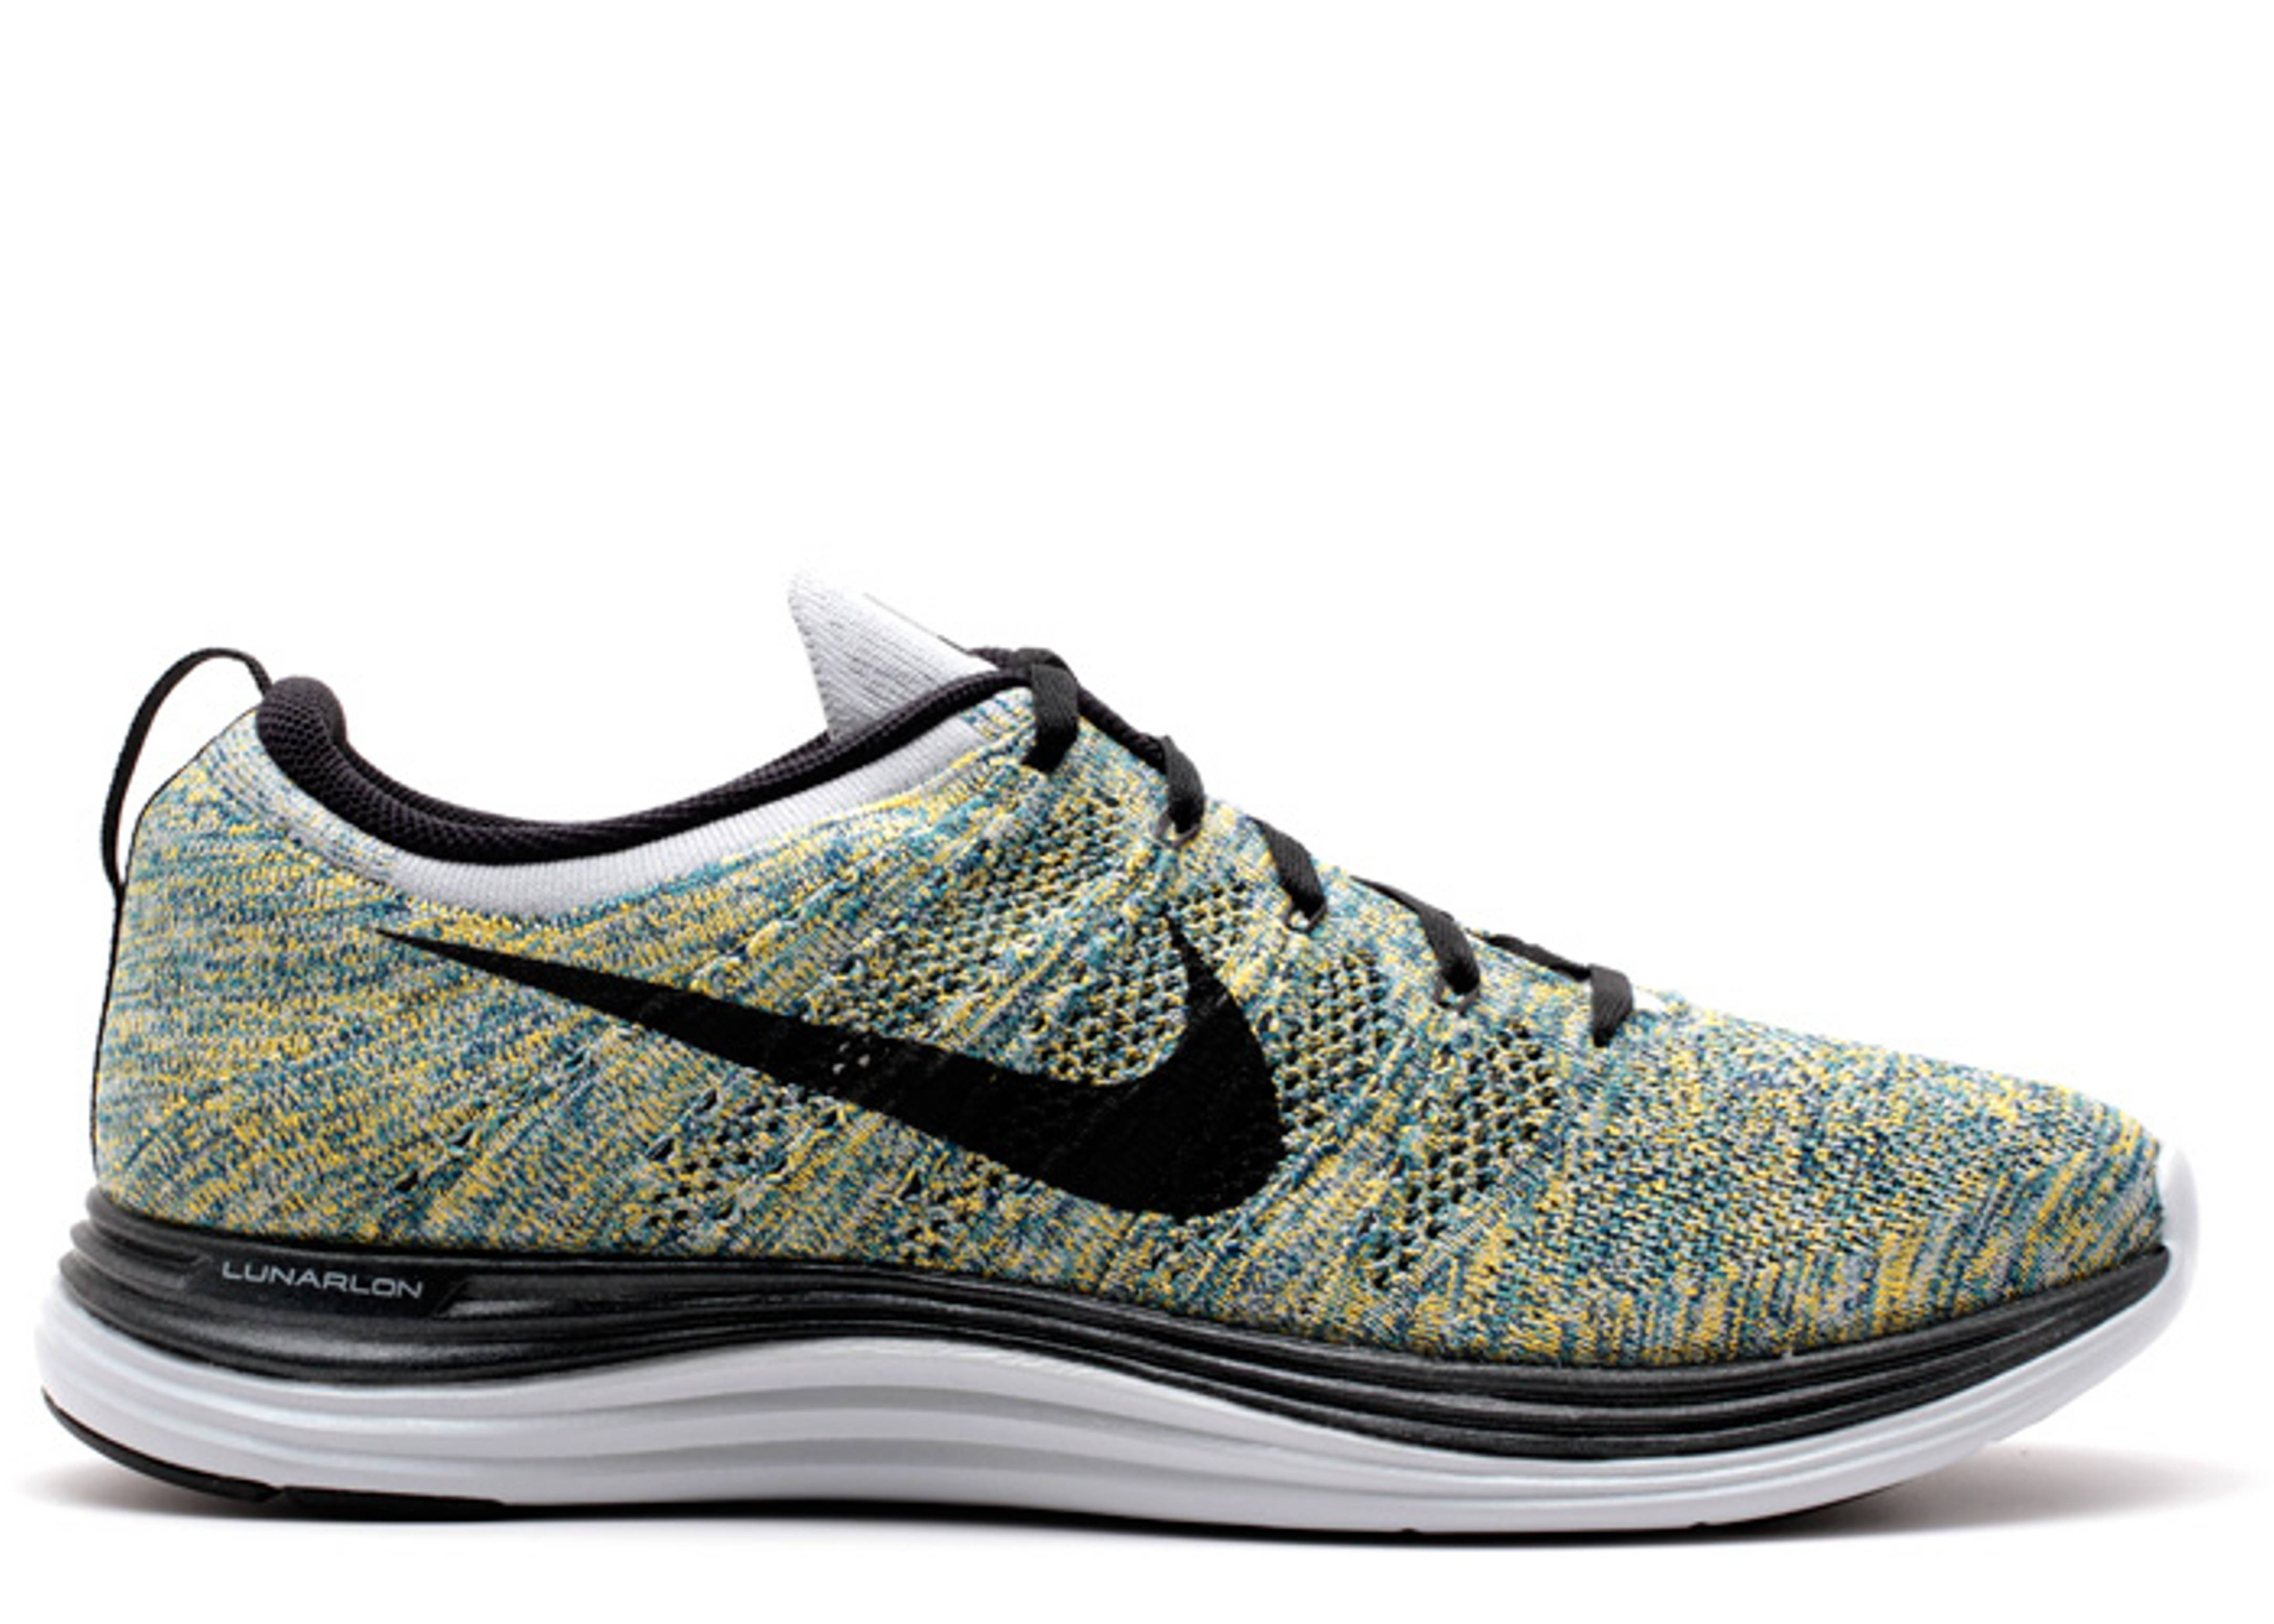 finest selection f2206 56234 ... discount code for nike. flyknit lunar1 77aac f2e6f discount code for  nike. flyknit lunar1 77aac f2e6f  closeout nike flyknit lunar 1 royal  obsidian blue ...